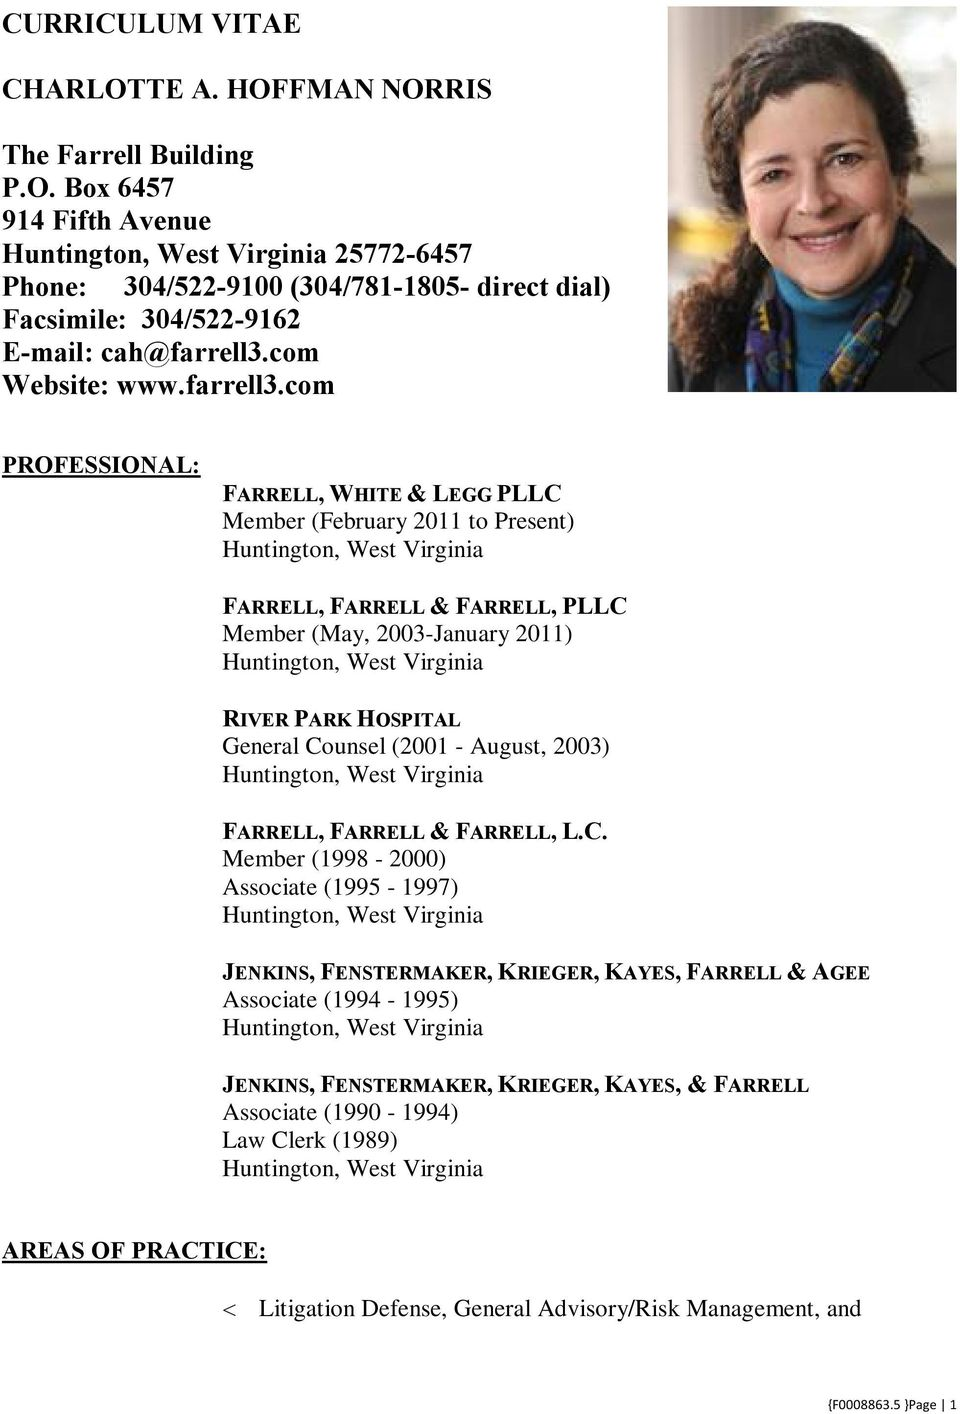 com PROFESSIONAL: FARRELL, WHITE & LEGG PLLC Member (February 2011 to Present) FARRELL, FARRELL & FARRELL, PLLC Member (May, 2003-January 2011) RIVER PARK HOSPITAL General Counsel (2001 -